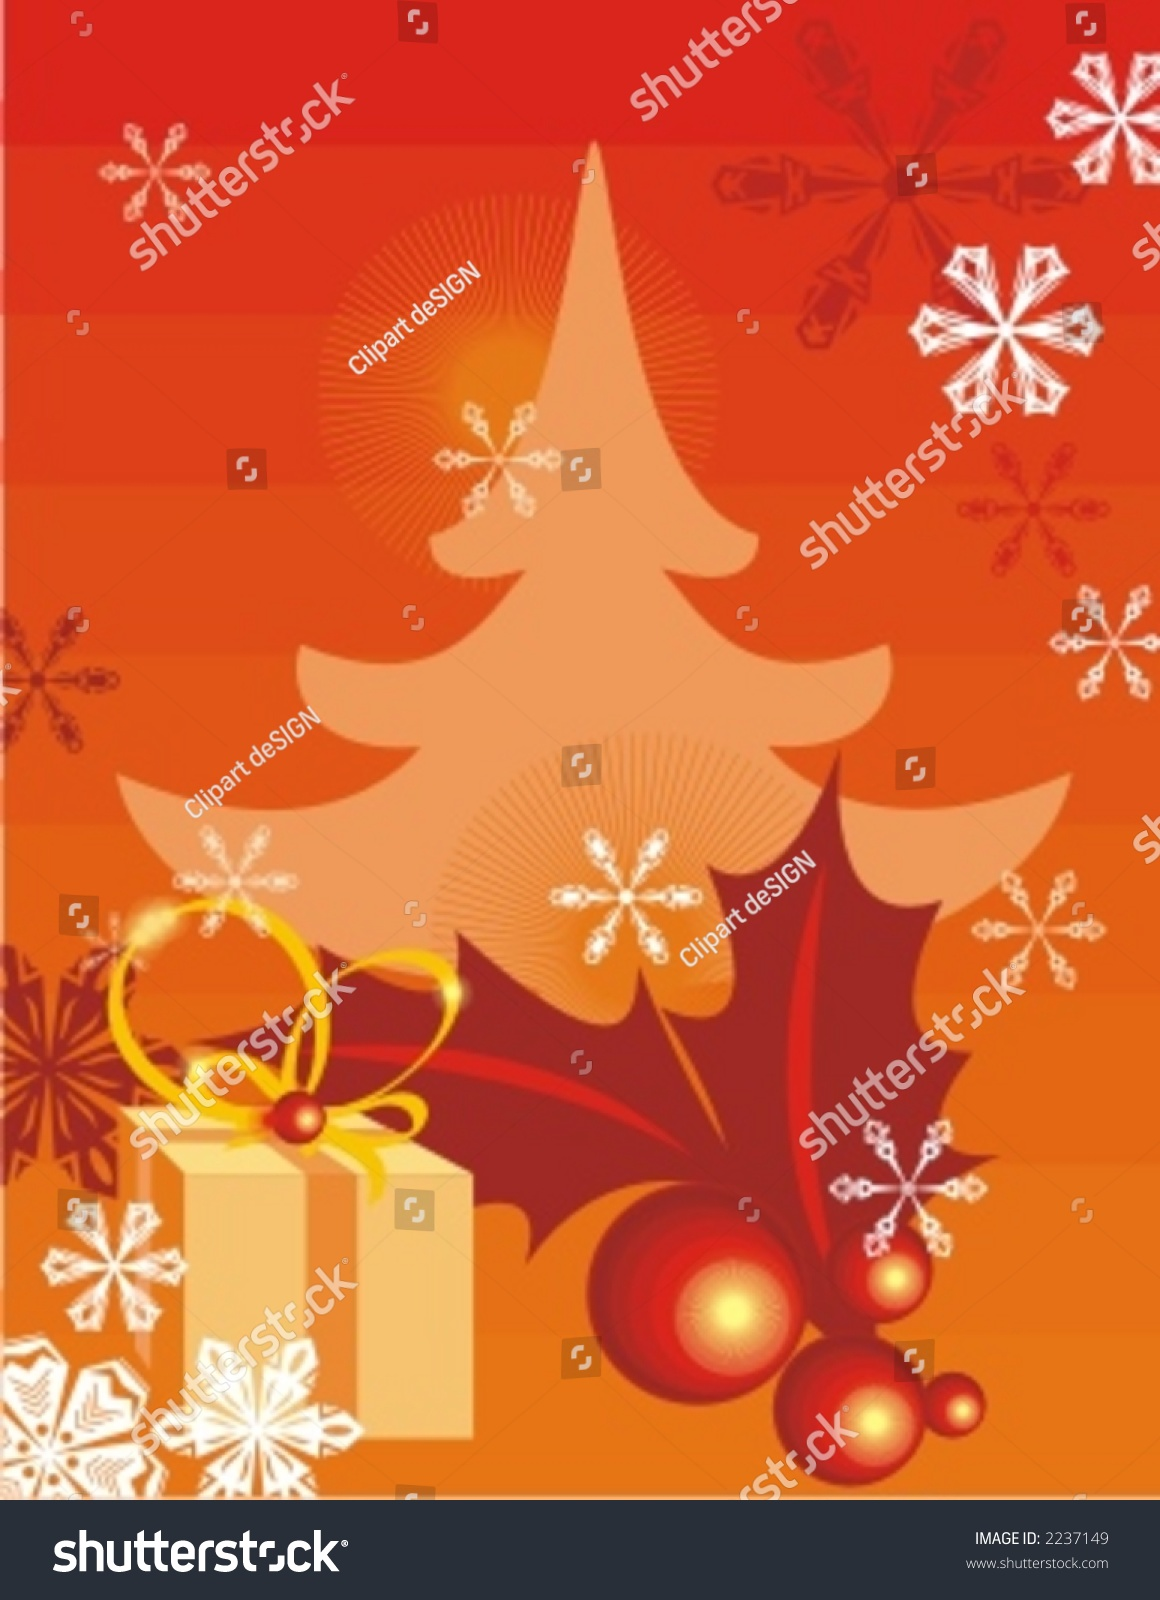 Exquisite Series Of Winter And Holiday Backgrounds. Check ...